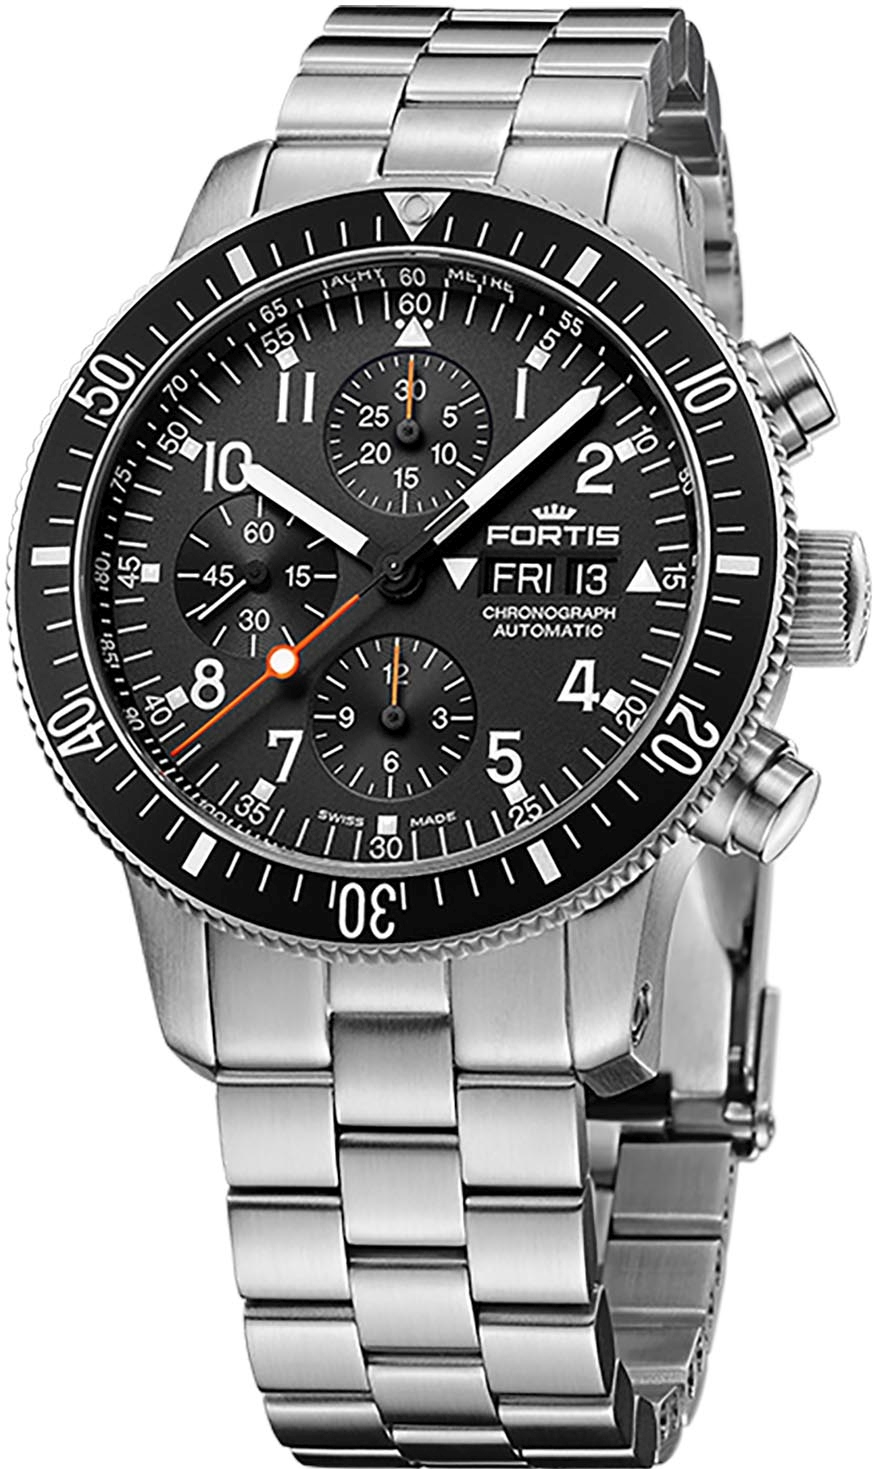 Fortis Official Cosmonauts Chronographe